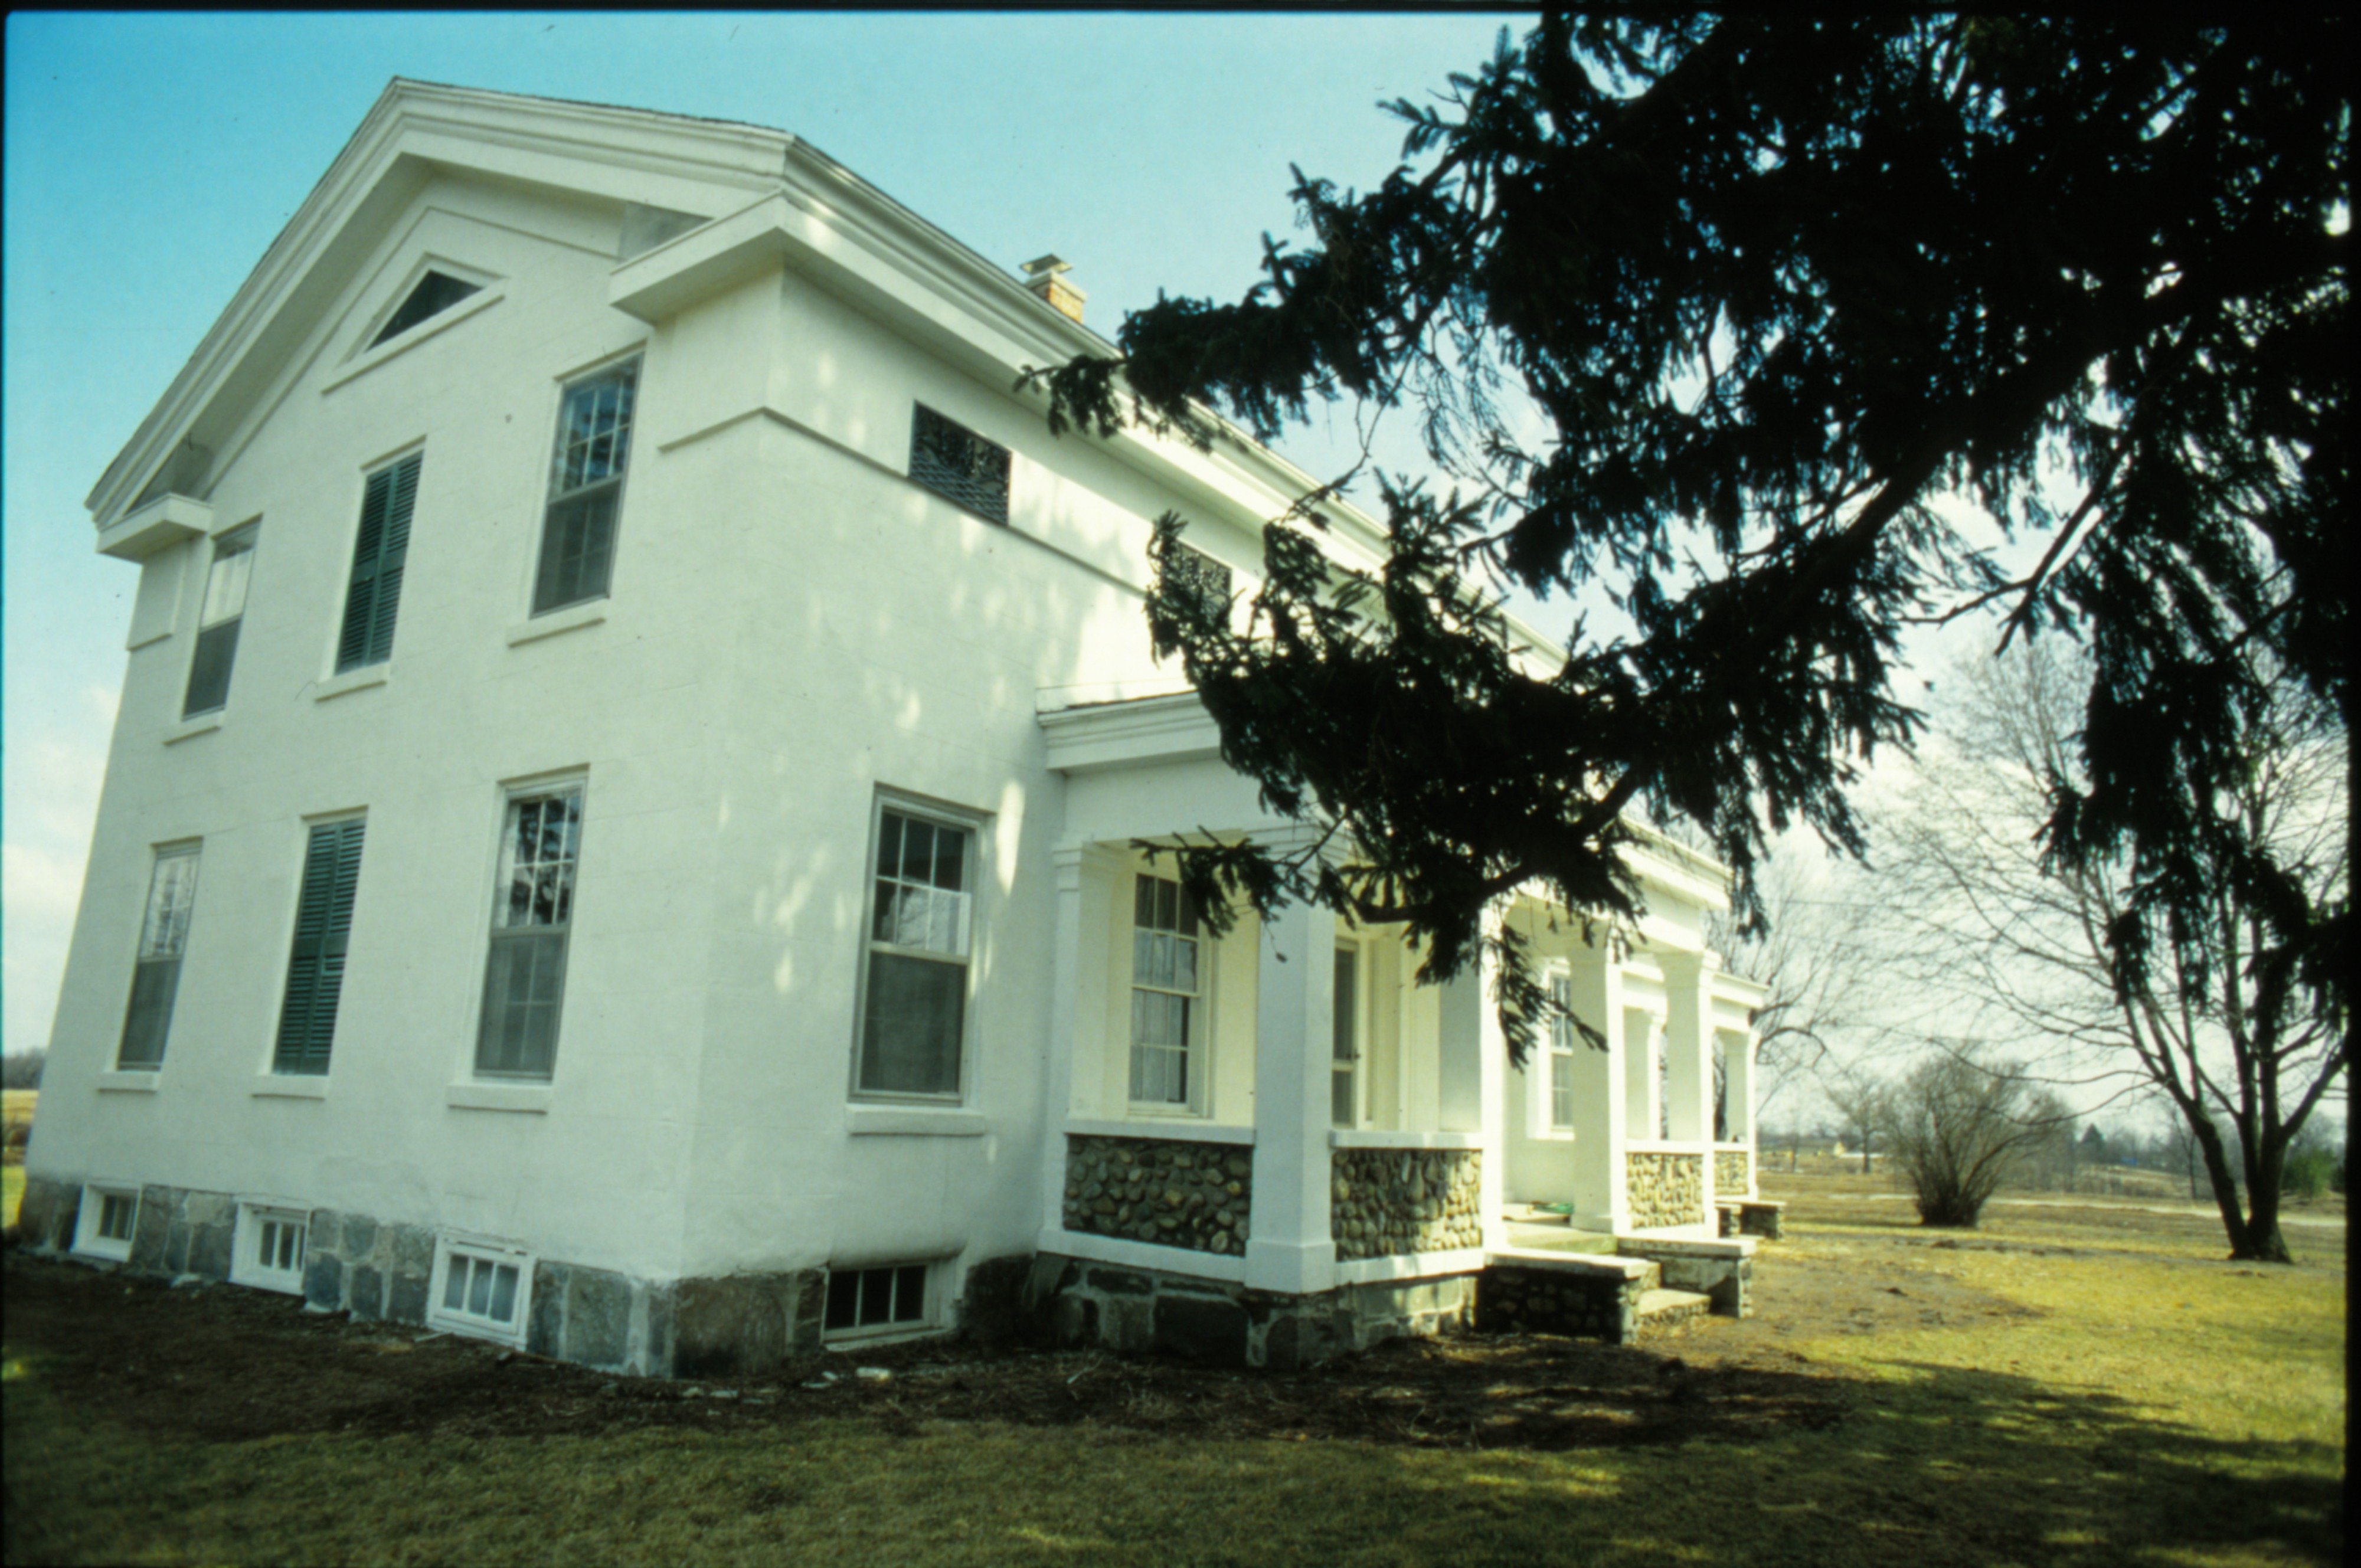 Exterior View of Tefft House During Renovation, March 1992 image